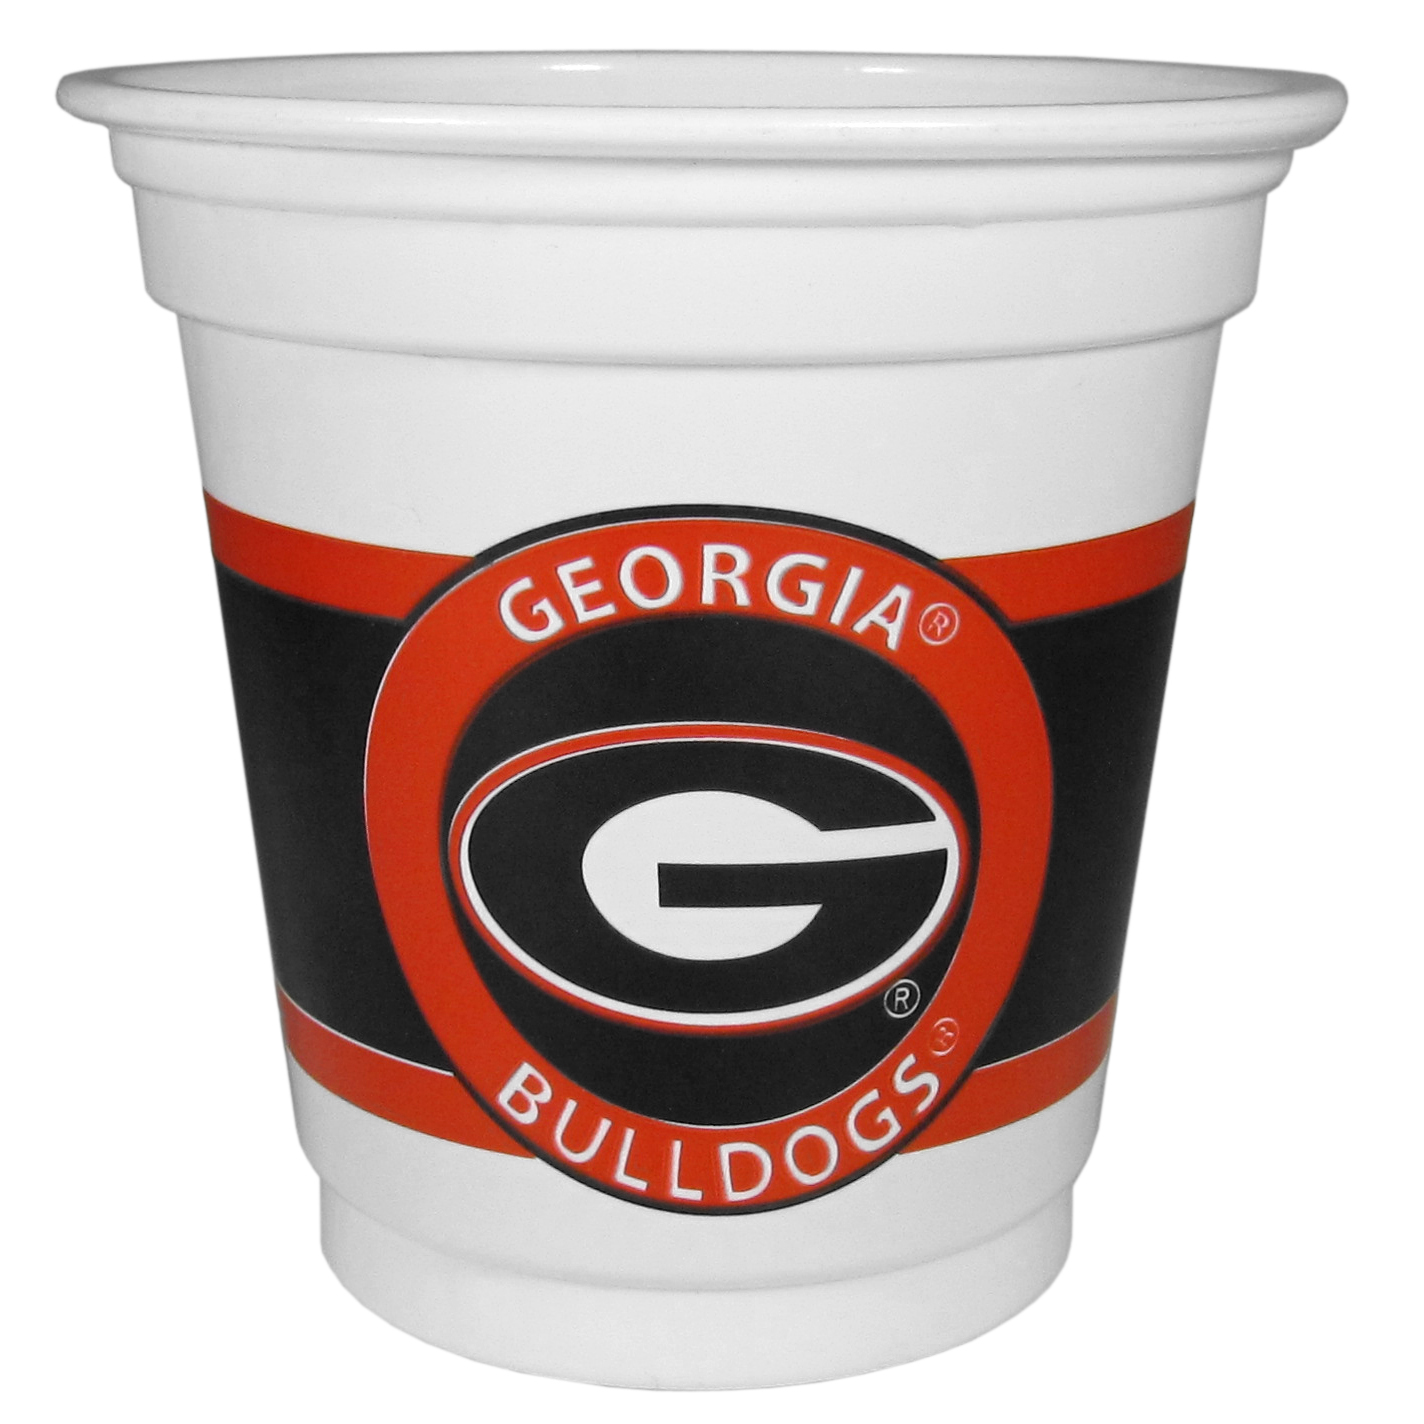 Georgia Bulldogs 18 Game Day Mini Cups - No better way to show your off your team pride on game day than these Georgia Bulldogs game day mini cups. The 3 ounce disposable glasses are the perfect addition to your game day party or tailgating BBQ. The cups come in a sleeve of 18 to make sure everyone is sporting true team spirit!